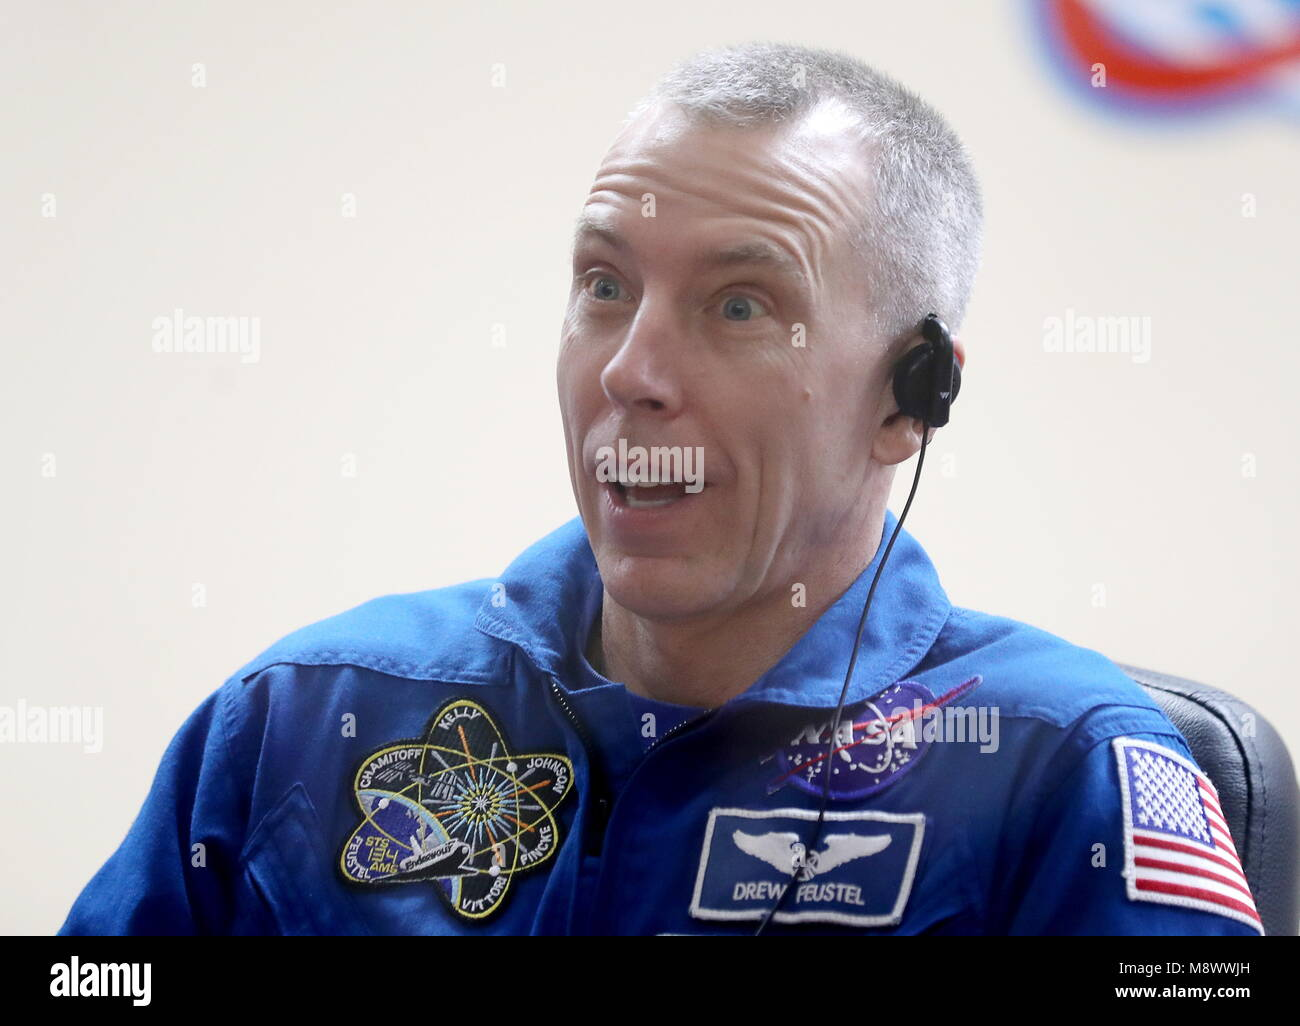 Baikonur, Kazakhstan. 20th Mar, 2018. BAIKONUR, KAZAKHSTAN - MARCH 20, 2018: NASA astronaut Andrew J. Feustel speaks - Stock Image